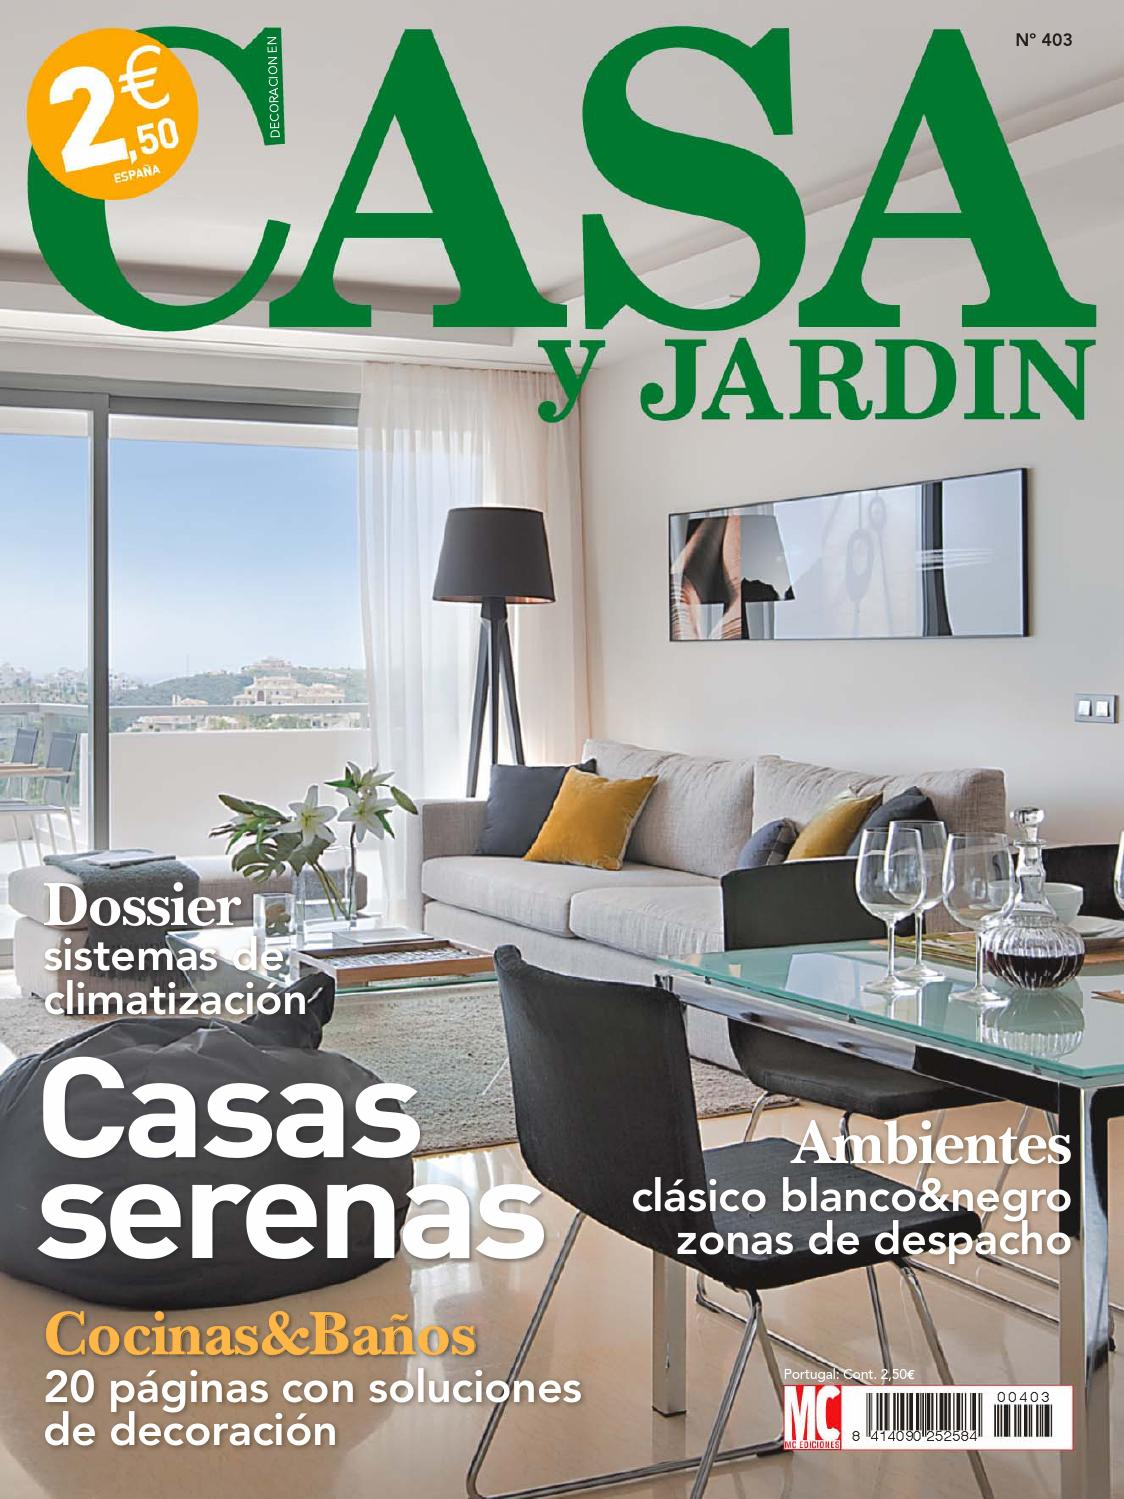 Casa y jardin by sucalon issuu for Casa y jardin revista pdf